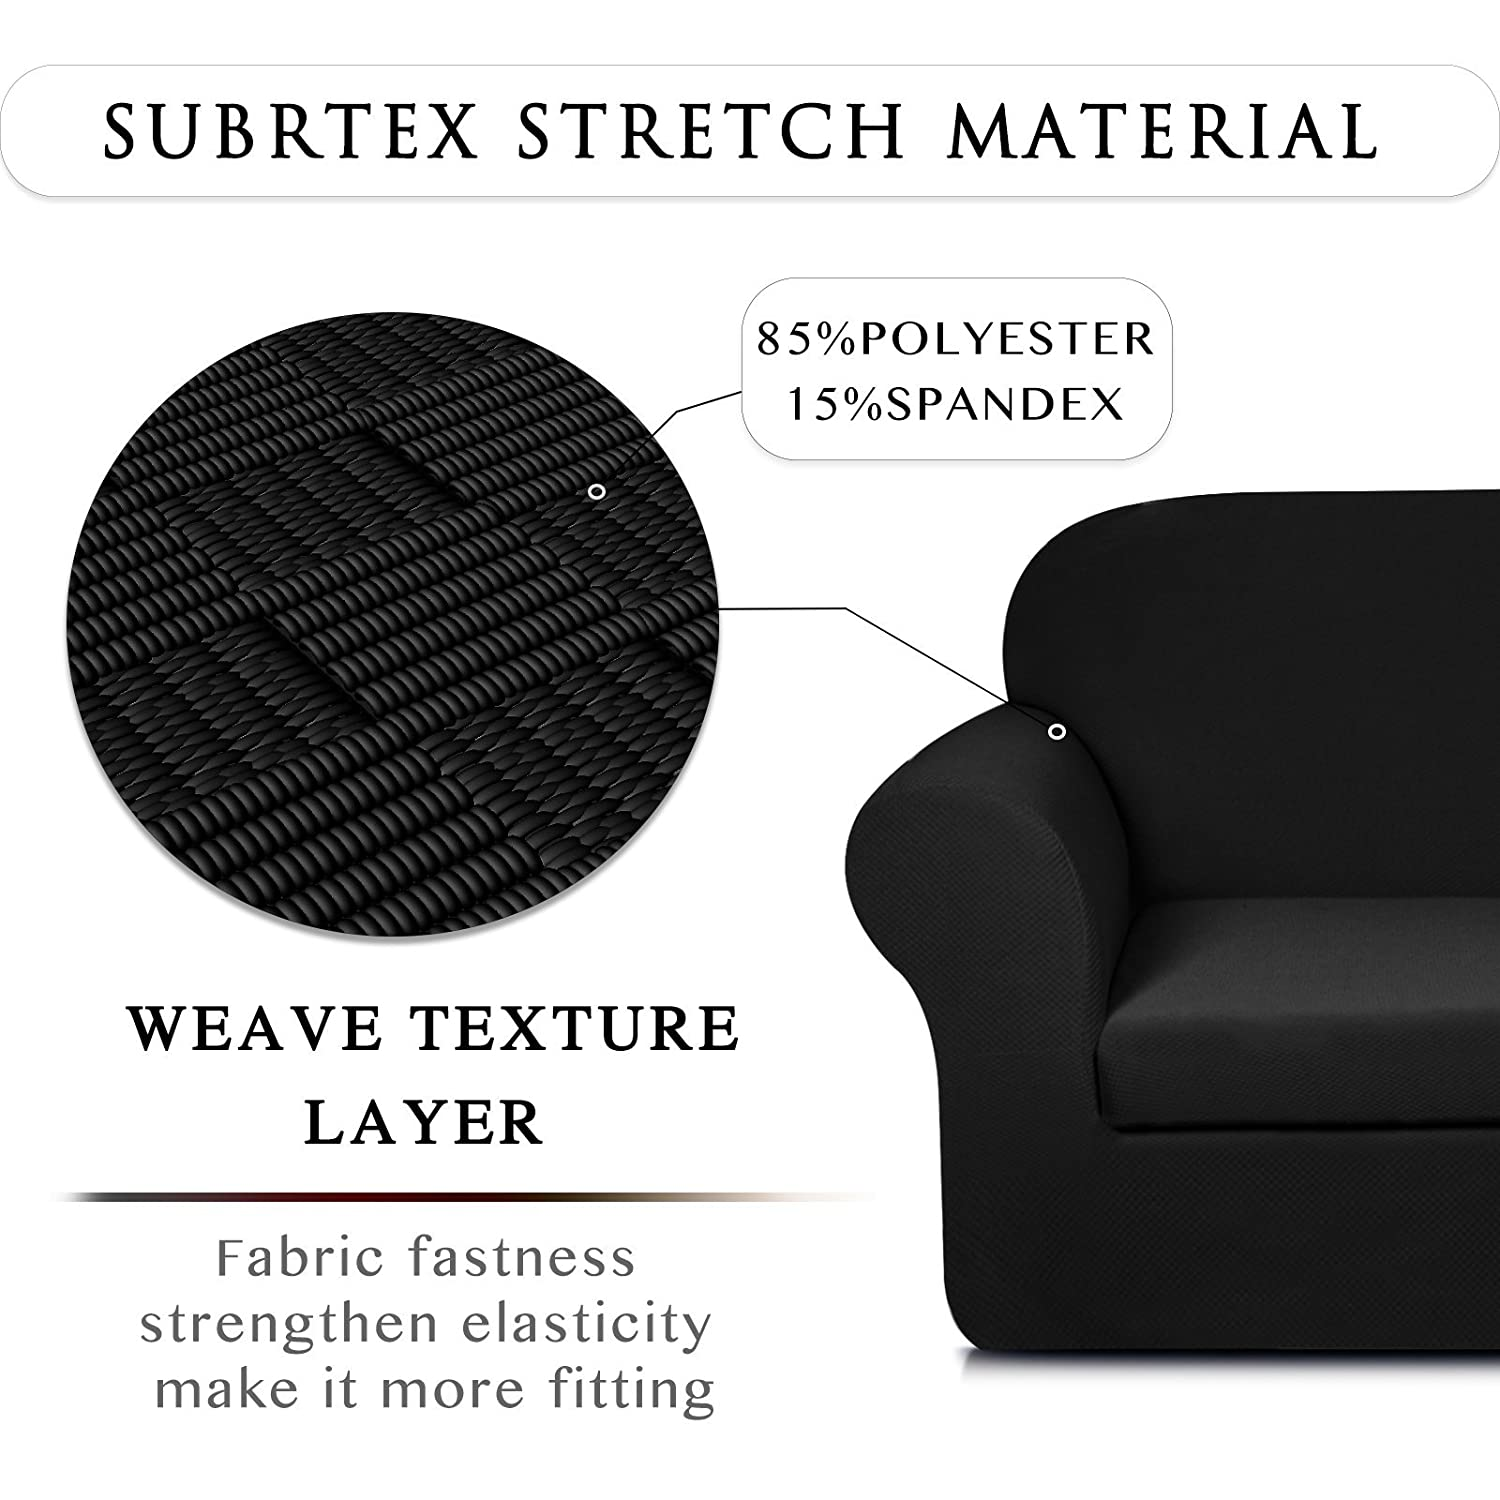 Reusable 1 Seater Cushion Cover Coffee, Chair Premium Jacquard Fabric Furniture Protector for Sofa Subrtex 2-Piece Stylish Knit Sofa Slipcover High Spandex Stretch Settee Cover